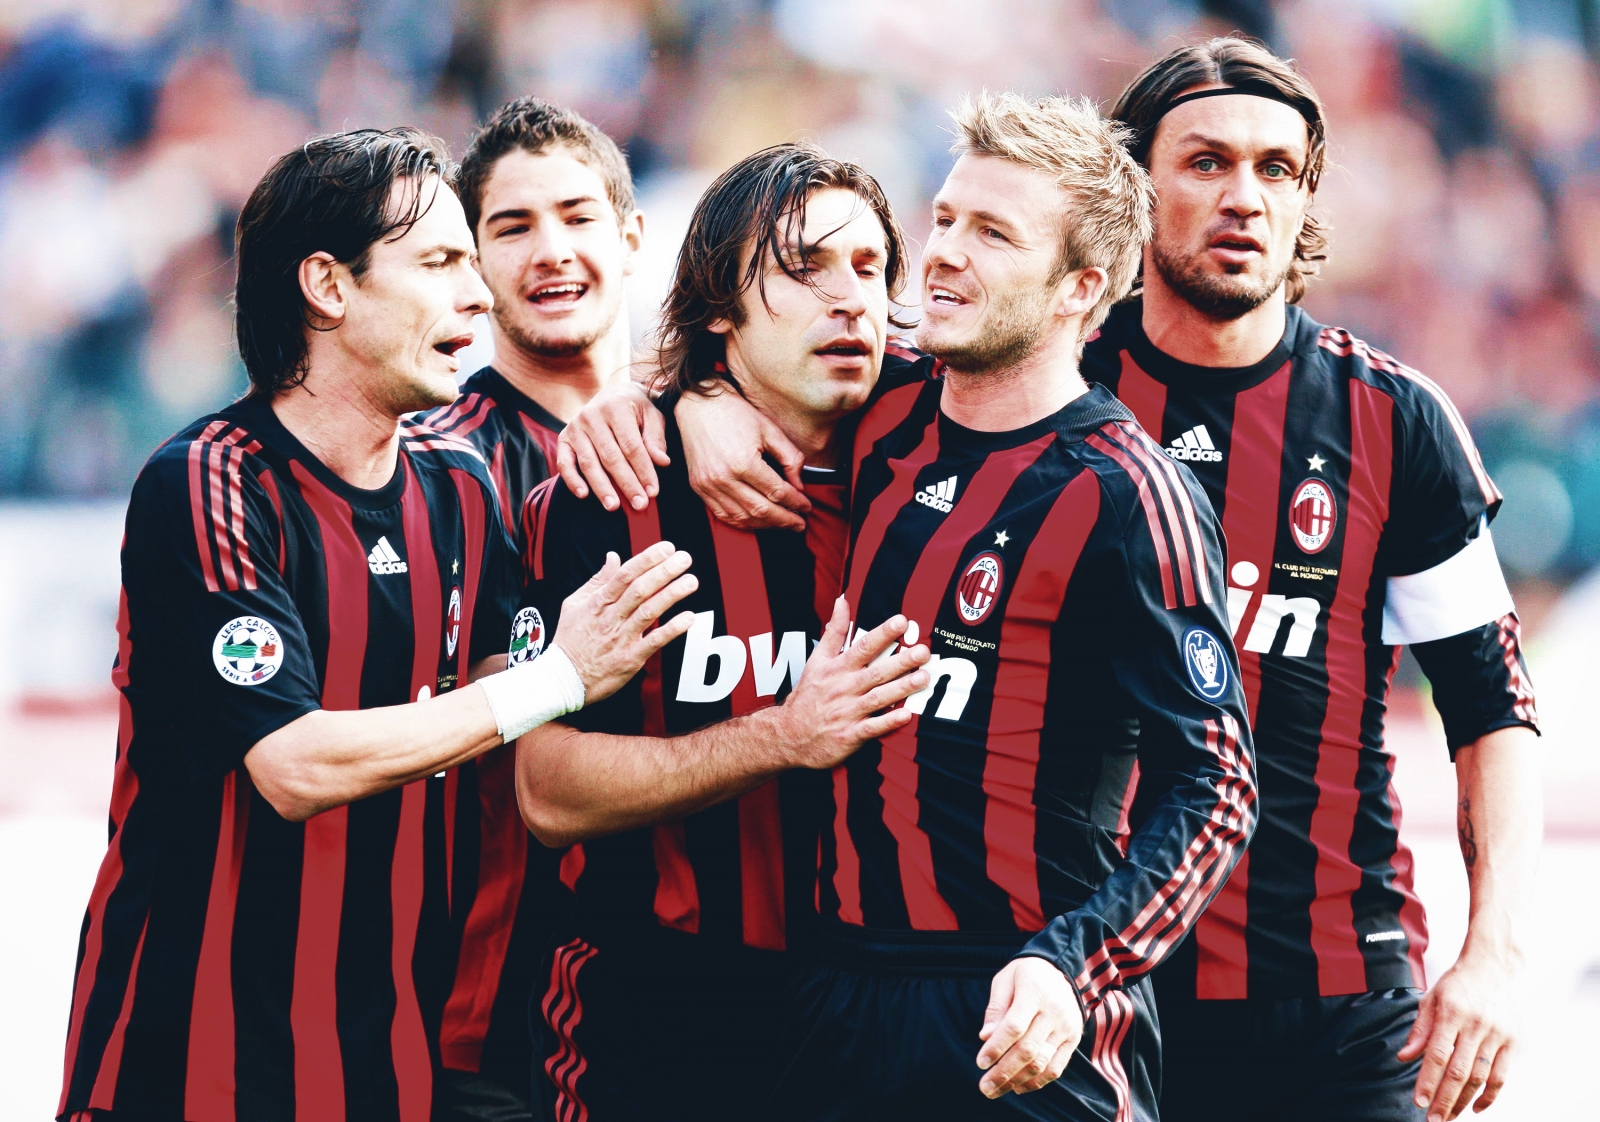 The pioneering AC Milan Lab that extended players' careers on germany national football team, england national football team, olympique de marseille, borussia dortmund, casa milan, france national football team, zlatan ibrahimovic milan, clarence seedorf, andrea poli milan, sporting clube de portugal, fc bayern munich, balotelli milan, fc barcelona, bayer leverkusen, shevchenko milan, famous people from milan, andrea pirlo, valencia cf, brazil national football team, ronaldinho milan, sevilla fc, iran milan, forza milan, olympique lyonnais, inter milan, shaarawy milan, mario yepes milan, real madrid, serie a, italy national football team, tripadvisor milan, new 2015 milan, uefa champions league,